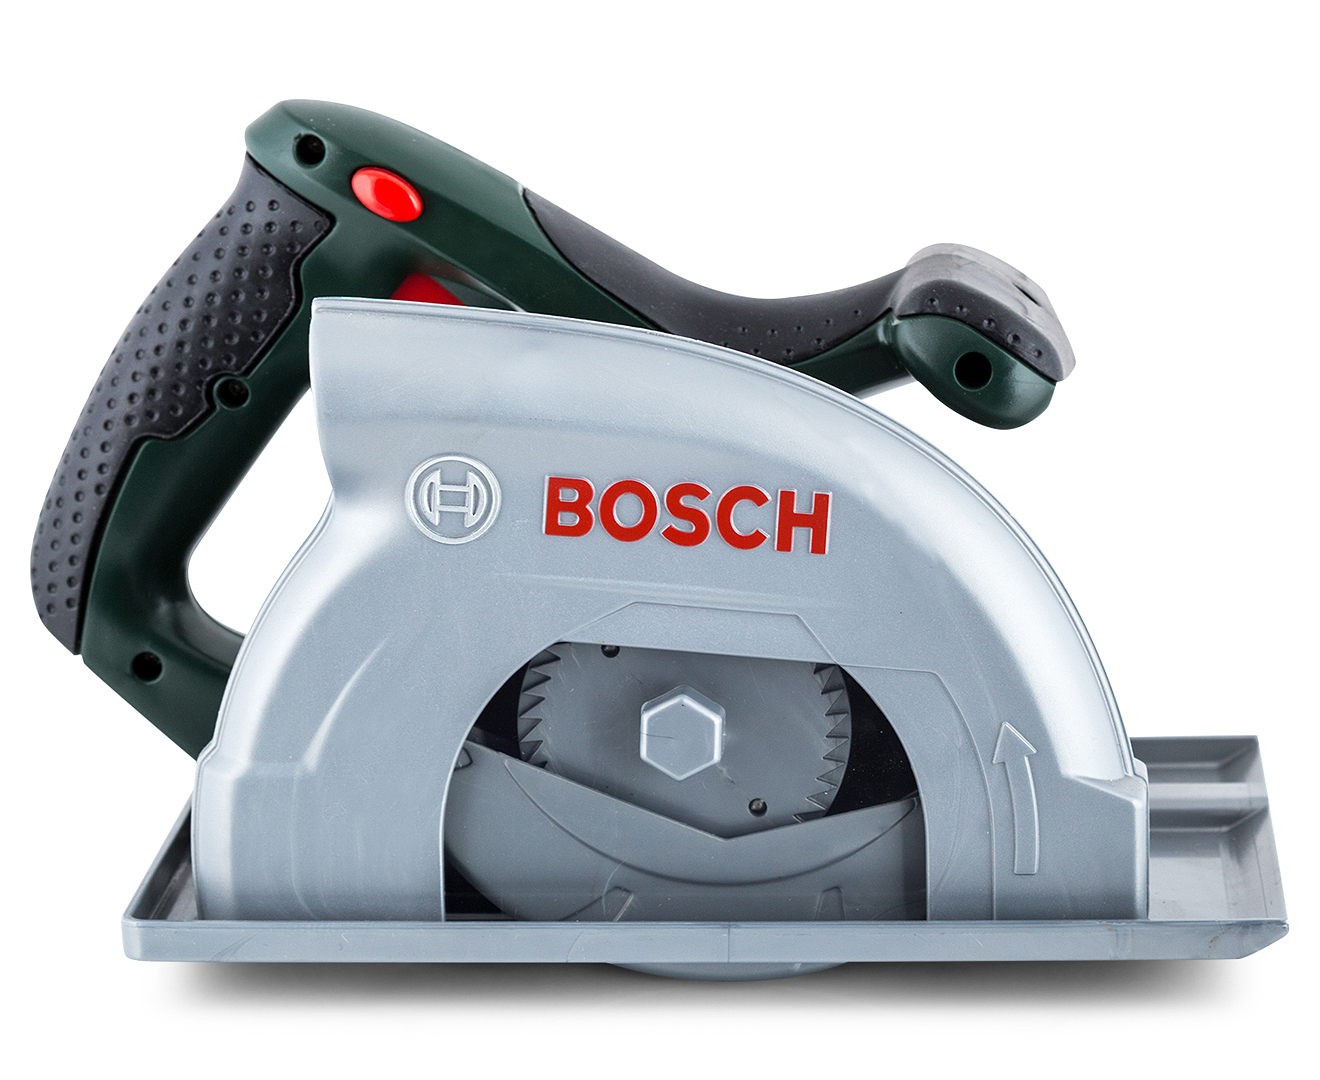 bosch mini circular saw toy ebay. Black Bedroom Furniture Sets. Home Design Ideas